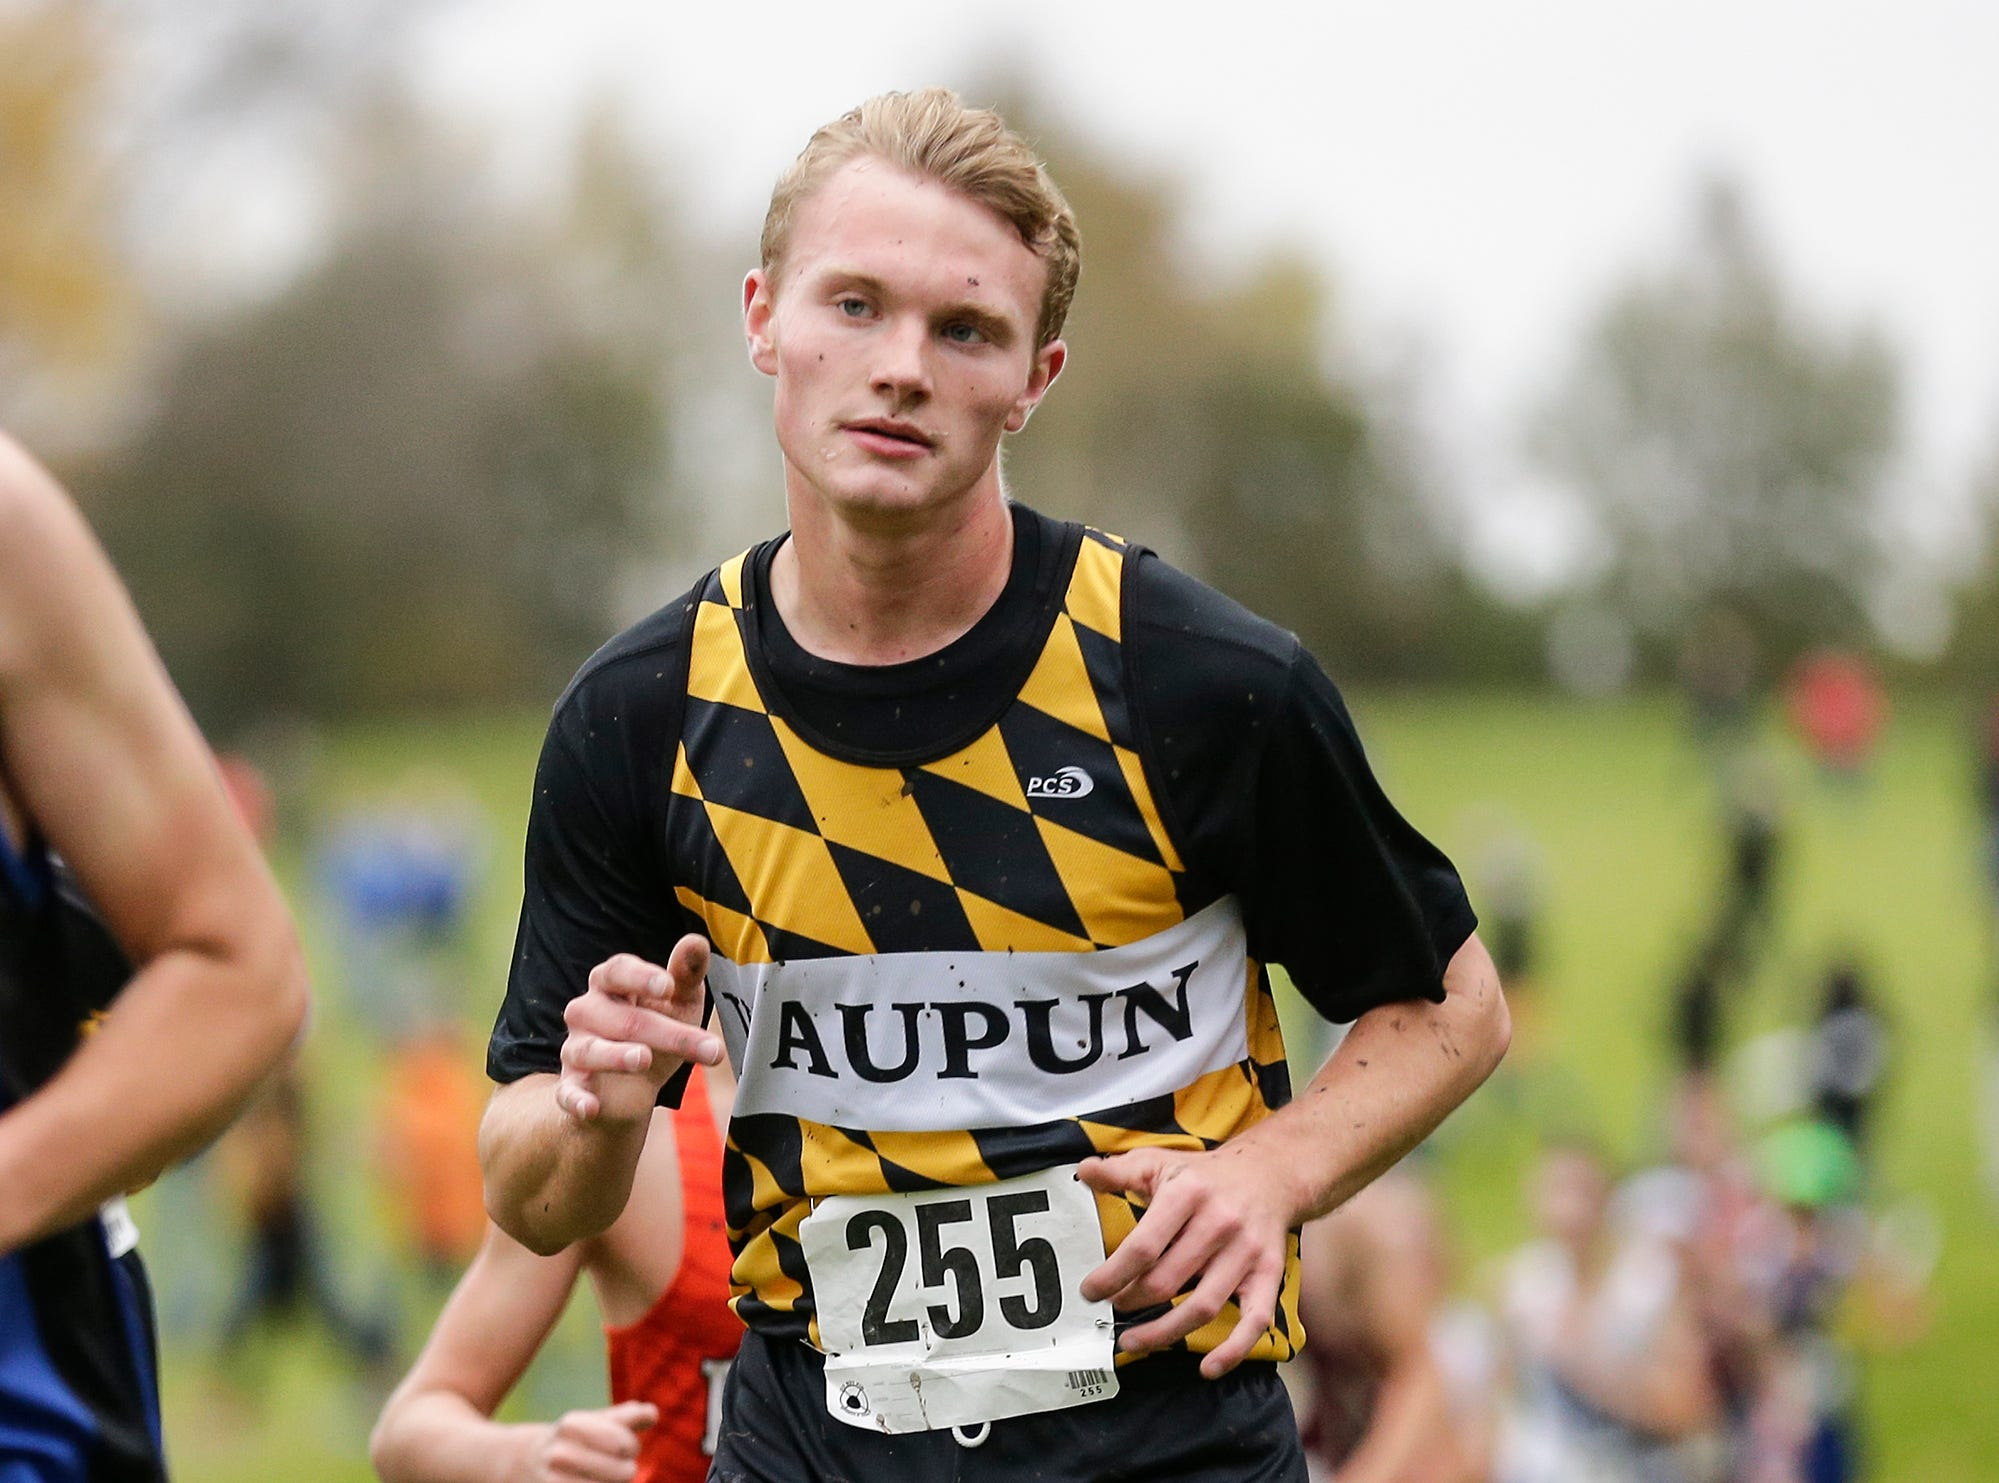 Waupun High School's Kanon Smit runs in the WIAA Division two Mayville sectional cross country meet at the Mayville golf course Friday, October 19, 2018. Doug Raflik/USA TODAY NETWORK-Wisconsin